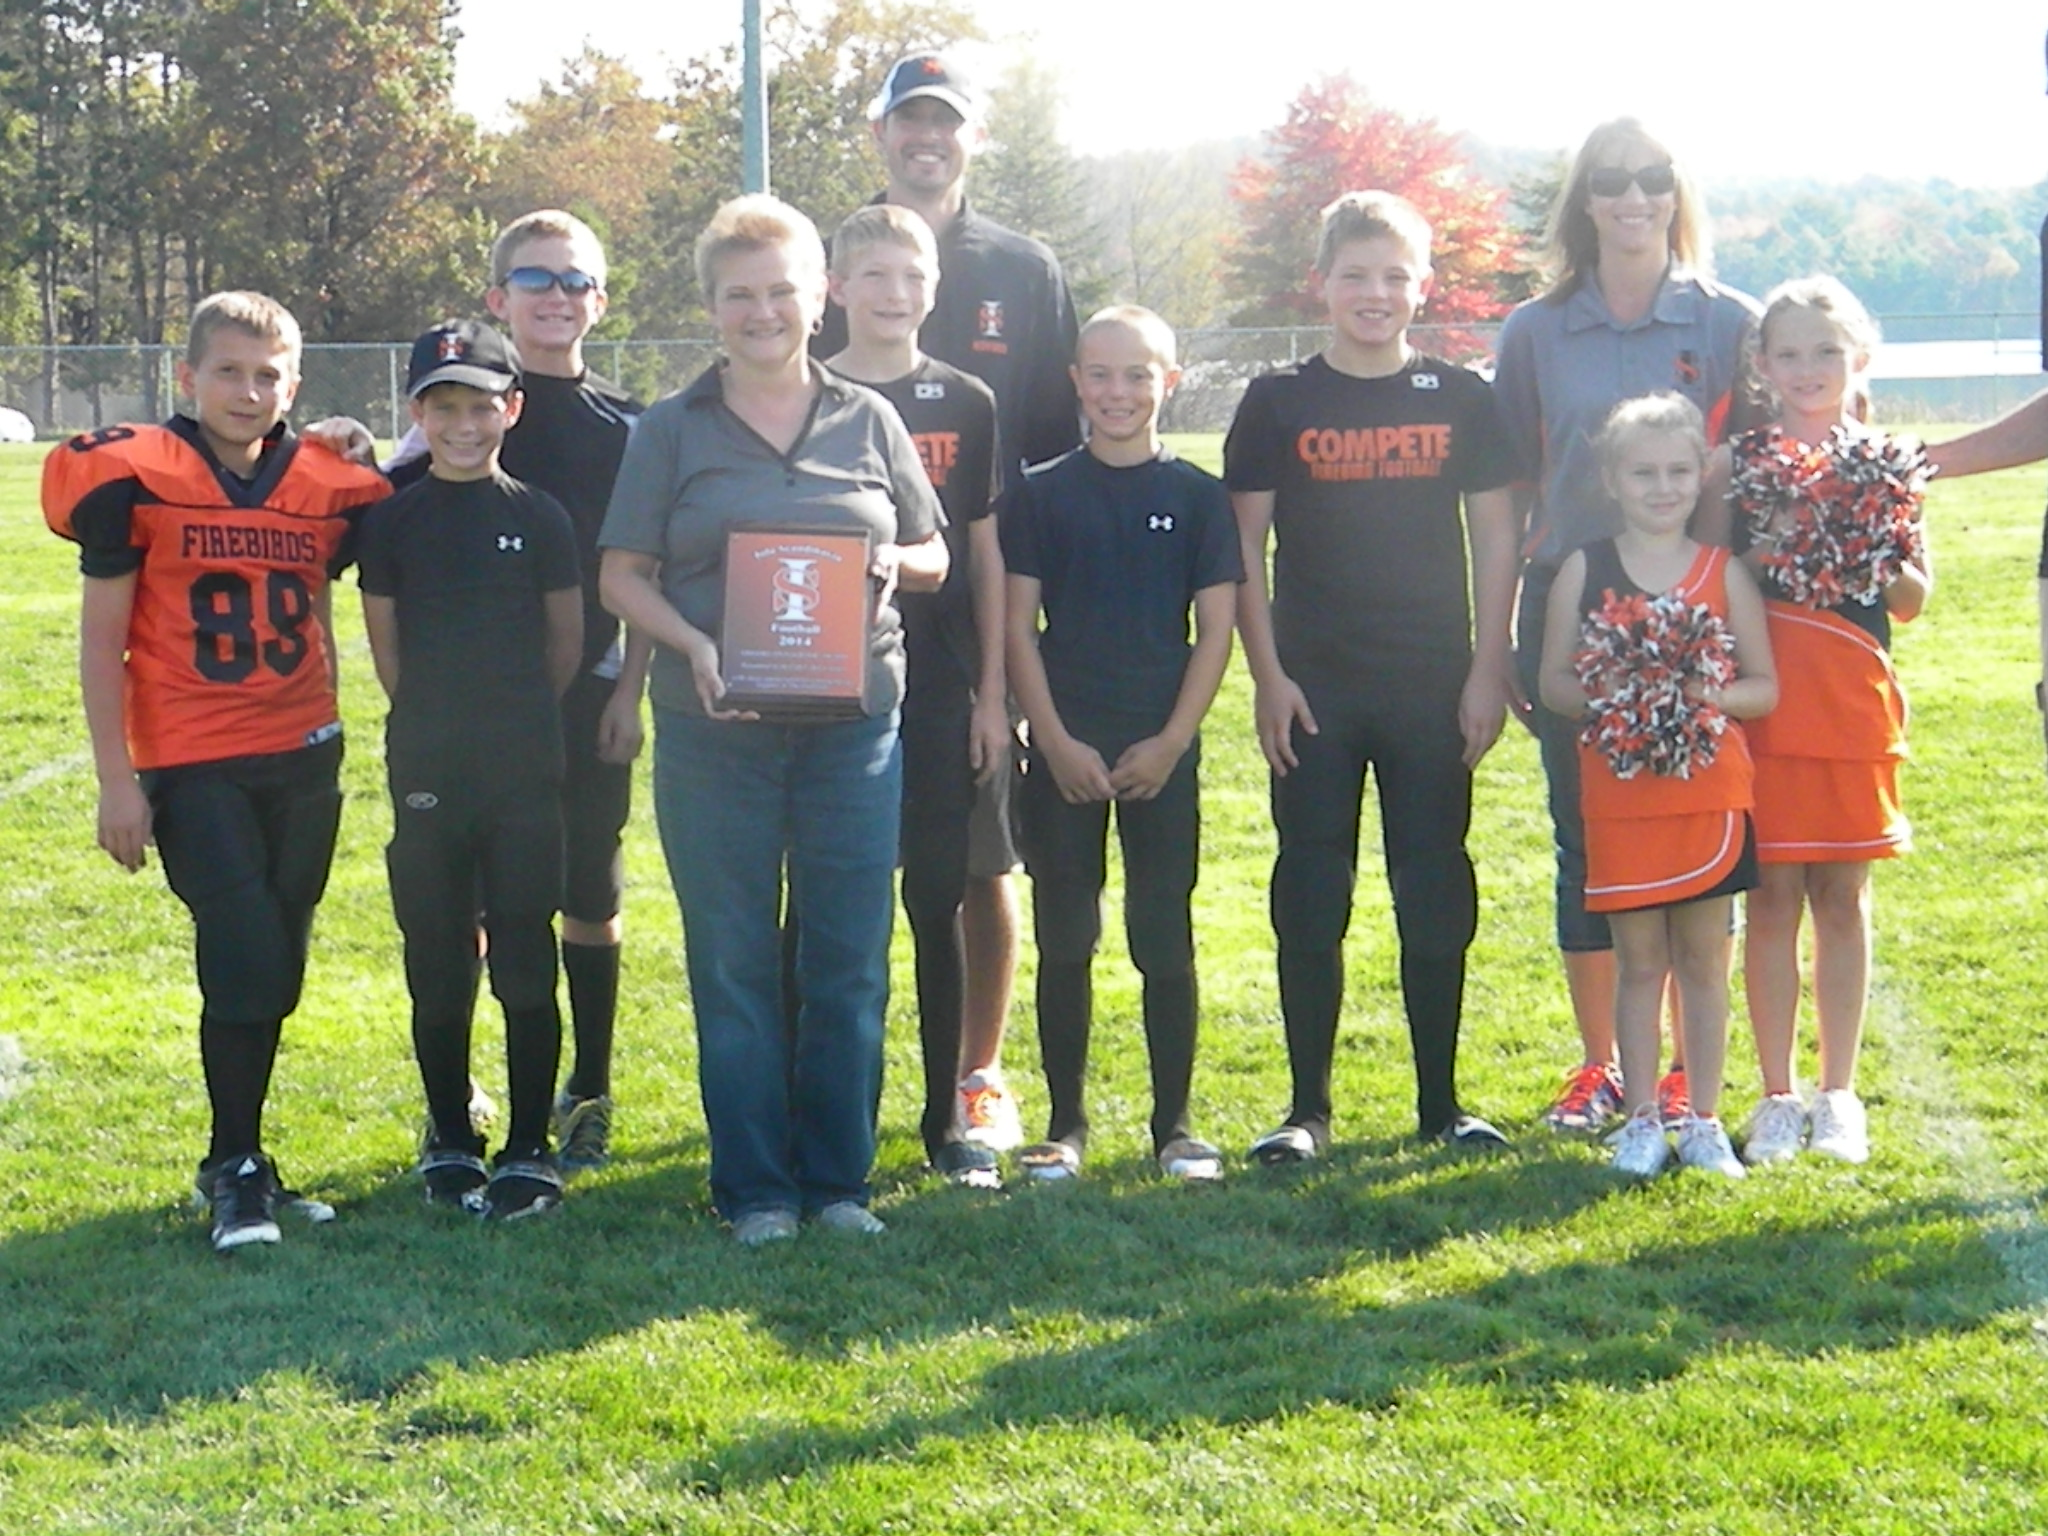 Sheri Kielblock of Silver Lake Lanes is presented with a plaque for hersupport ofthe Firebirds program.